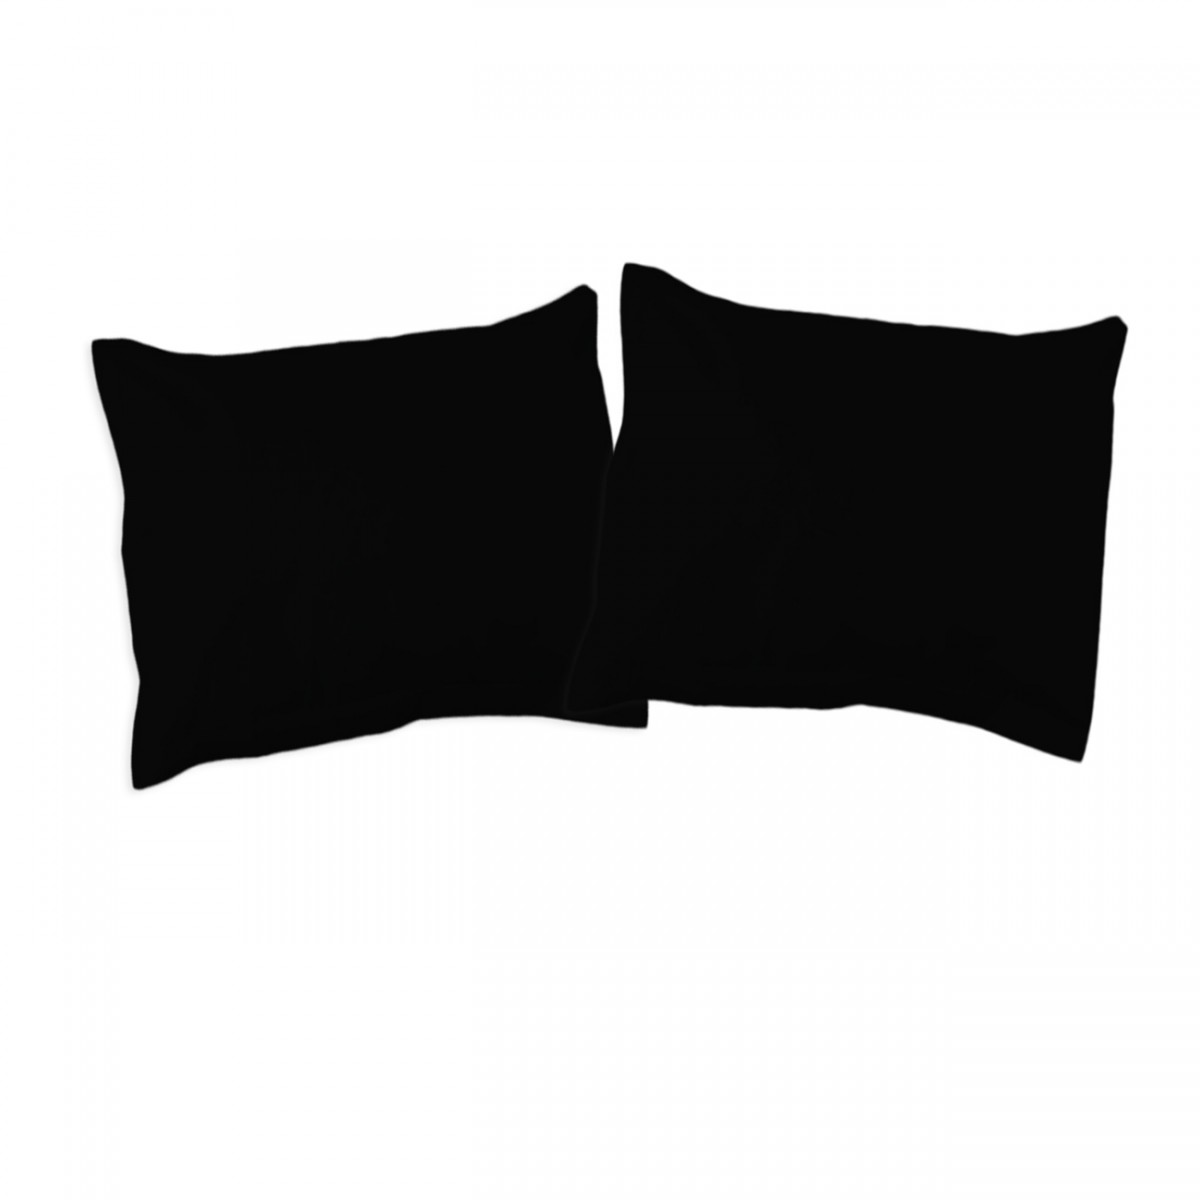 Black Throw Pillows For Bed : black pillows for bed black pillow cases 100 cotton bedding soulbedroom